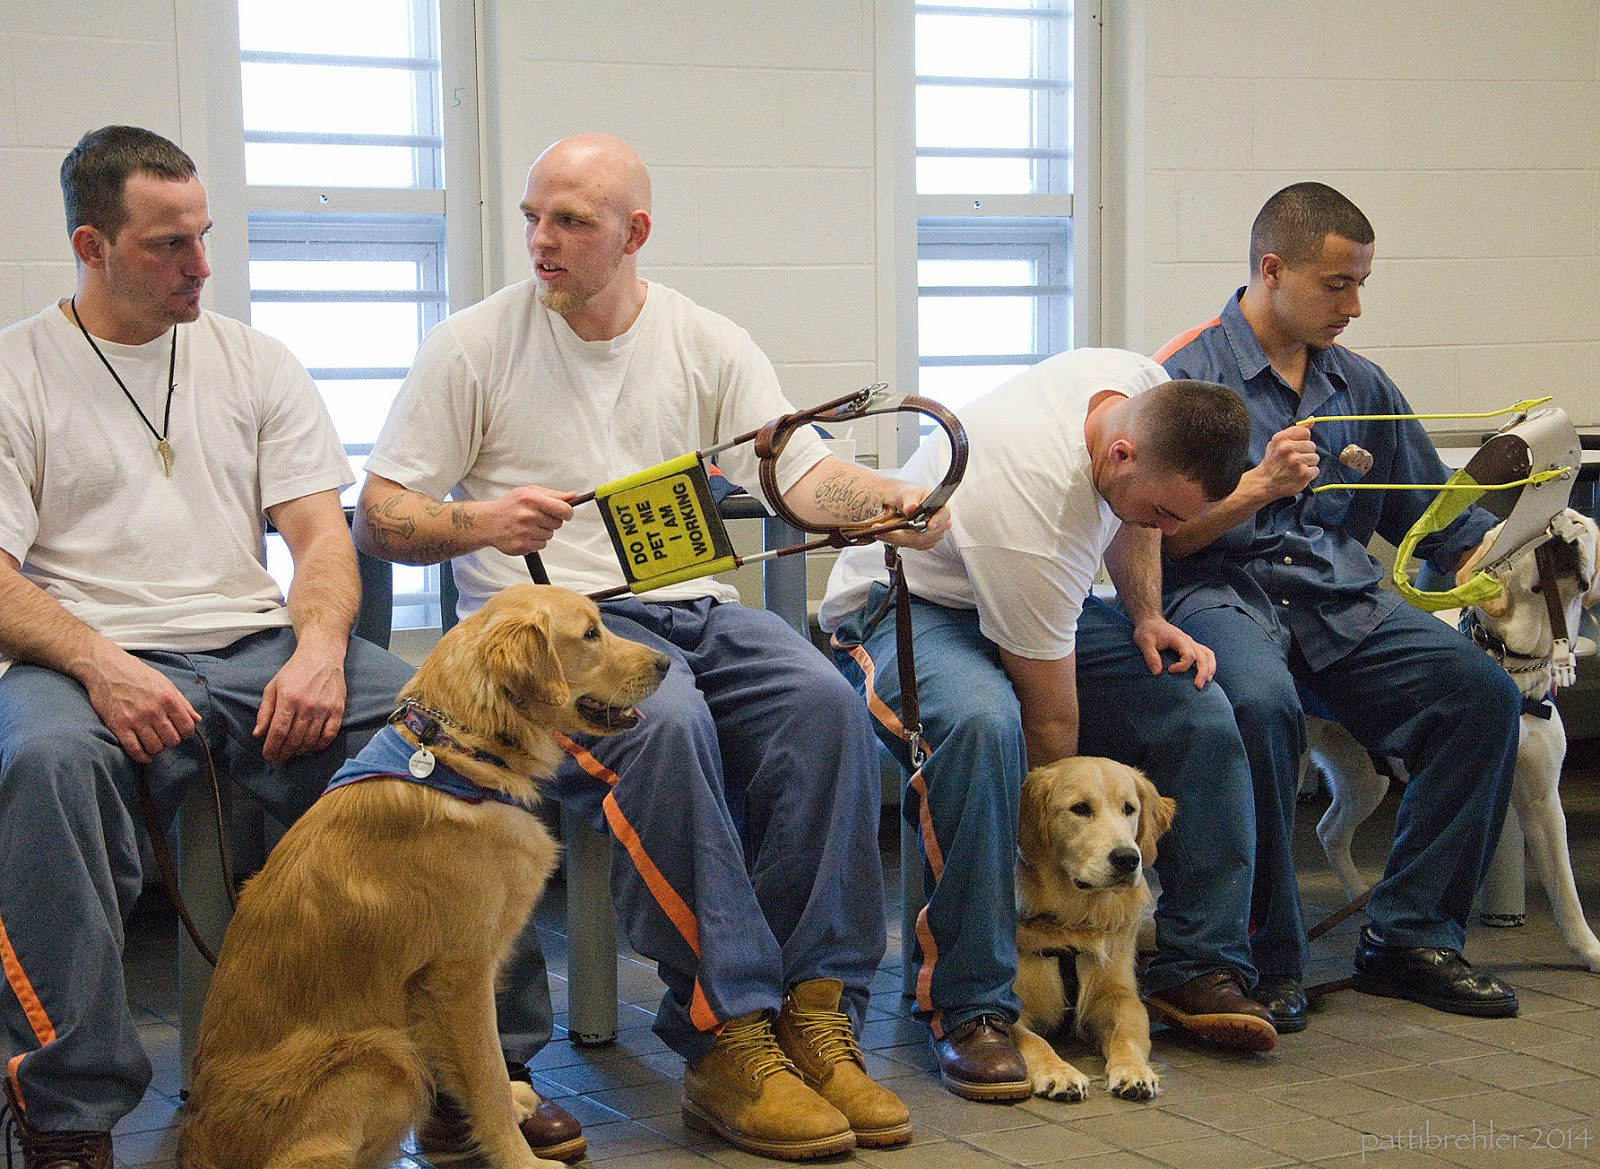 "Four men are sitting on stools in a row, with two golden retrivers and one yellow lab. Three of the men have the prison blue pants and white t-shirts, the man on the far right has a blue shirt. The first golden is sitting facing the right in front of the first two men. The second golden is lying down between the legs of the thrid man, who is reaching down to the dog. The yellow lab is standing past the last man. The second and fourth men are holding guide dog harnesses. The second man's harness is brown leather with a yellow ""do not pet me I'm working"" sign on the handle. The fourth man's harness is white with a yellow harness."